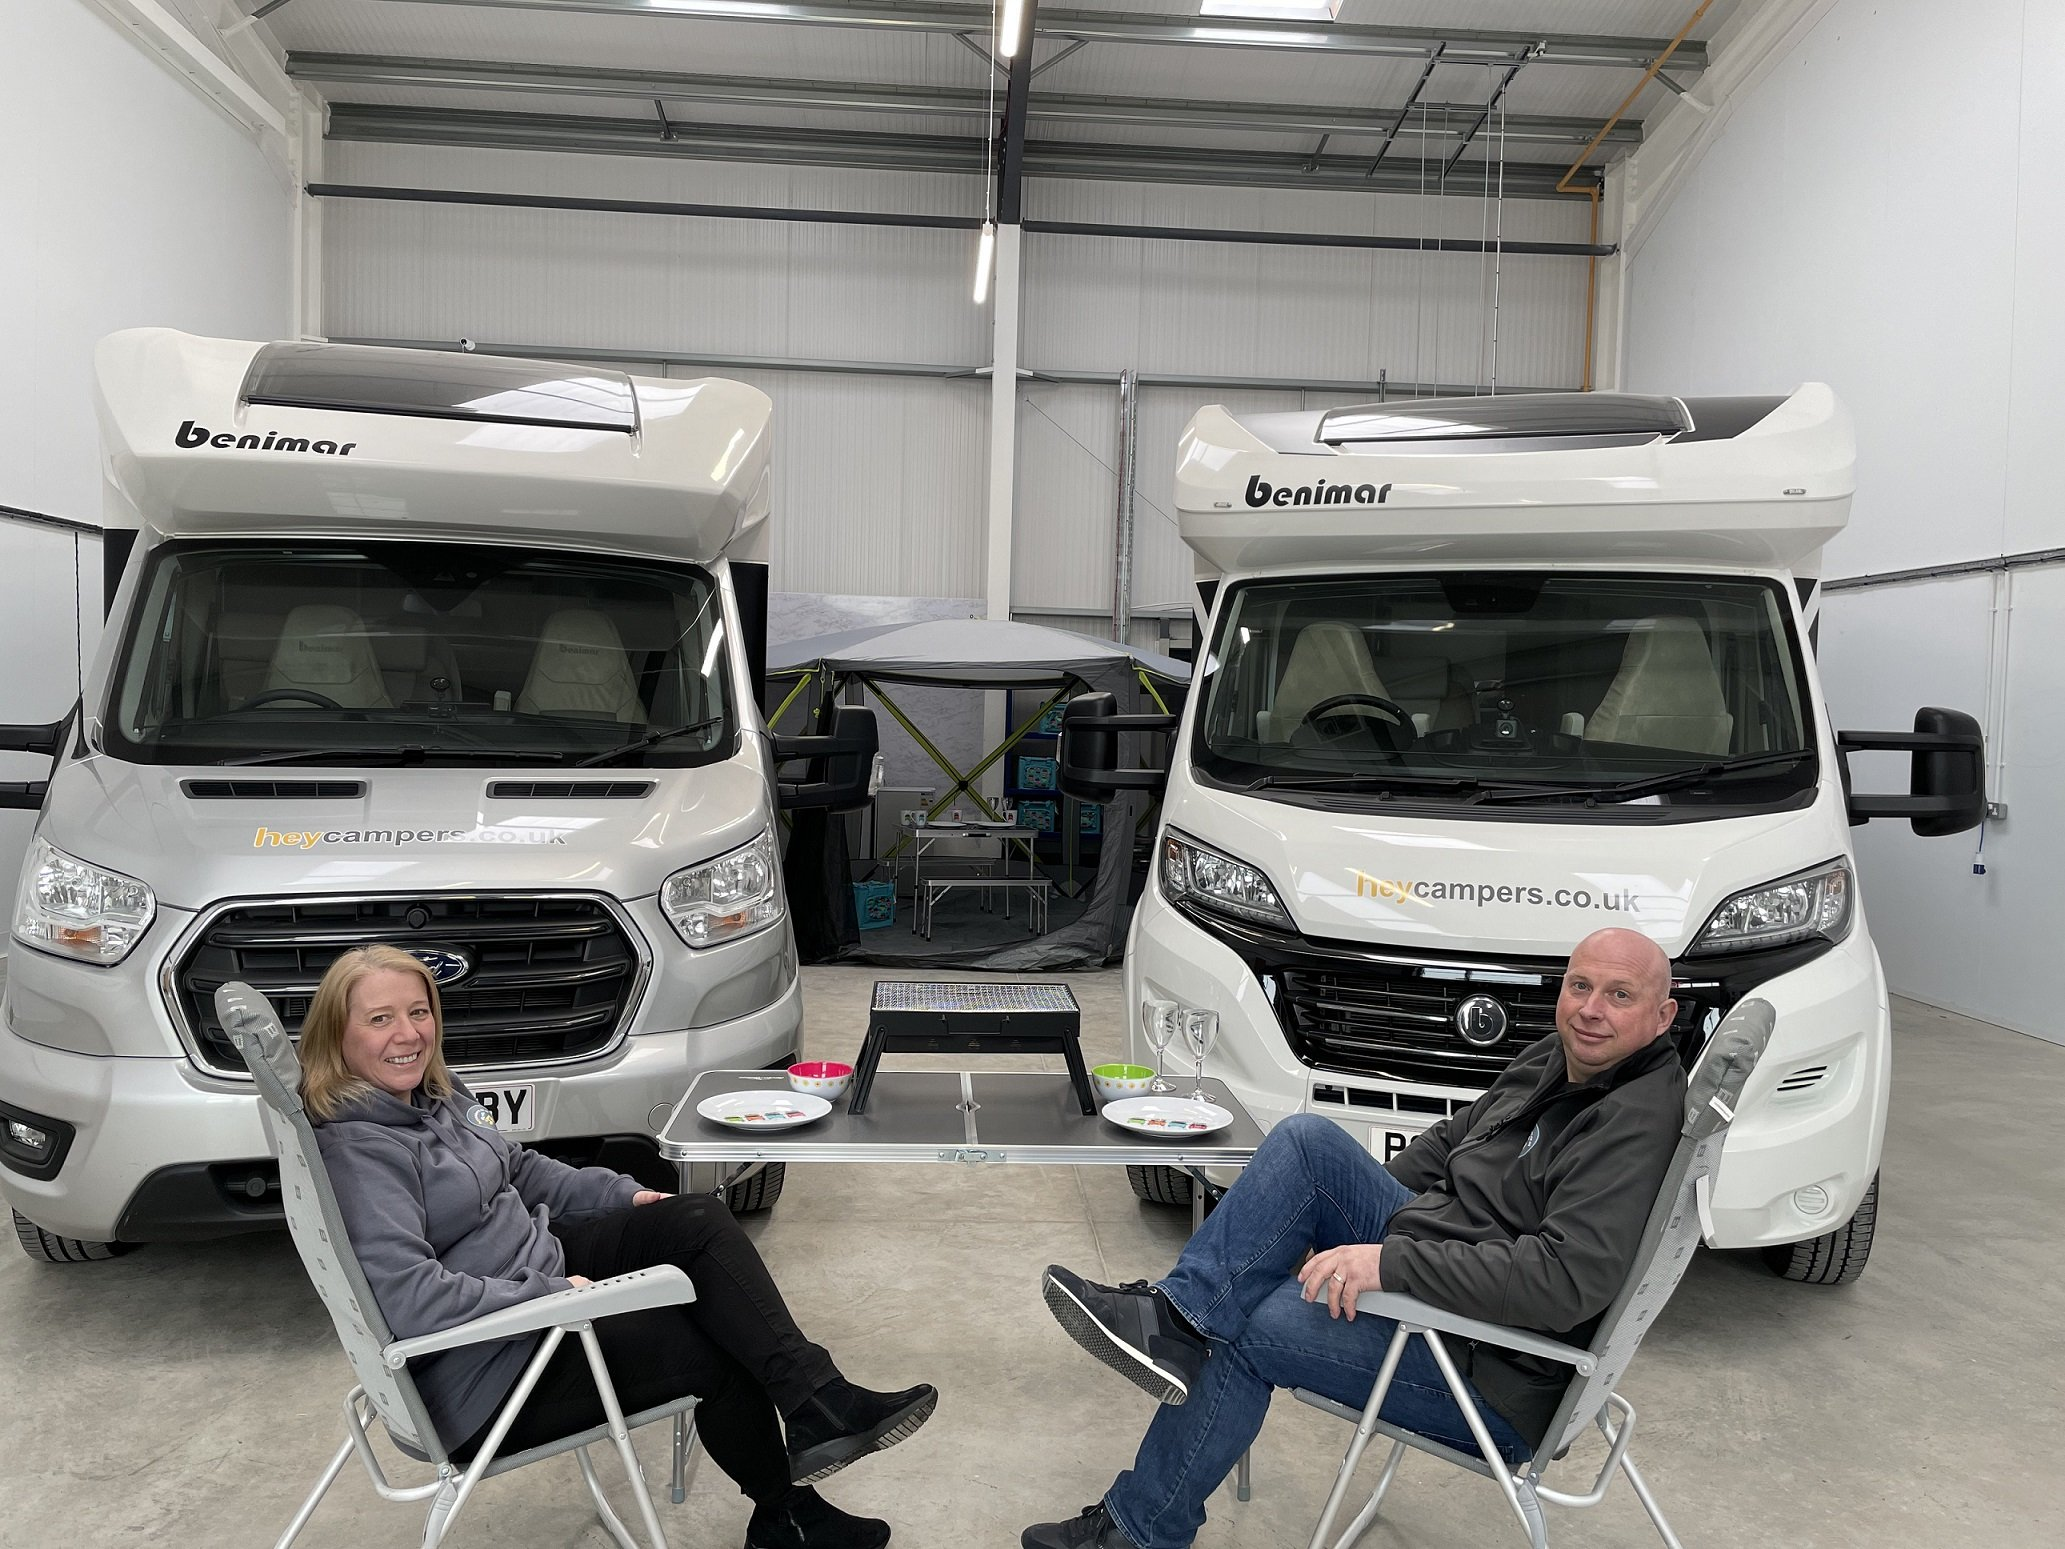 Keen campers launch motorhome hire company as staycation bookings surge